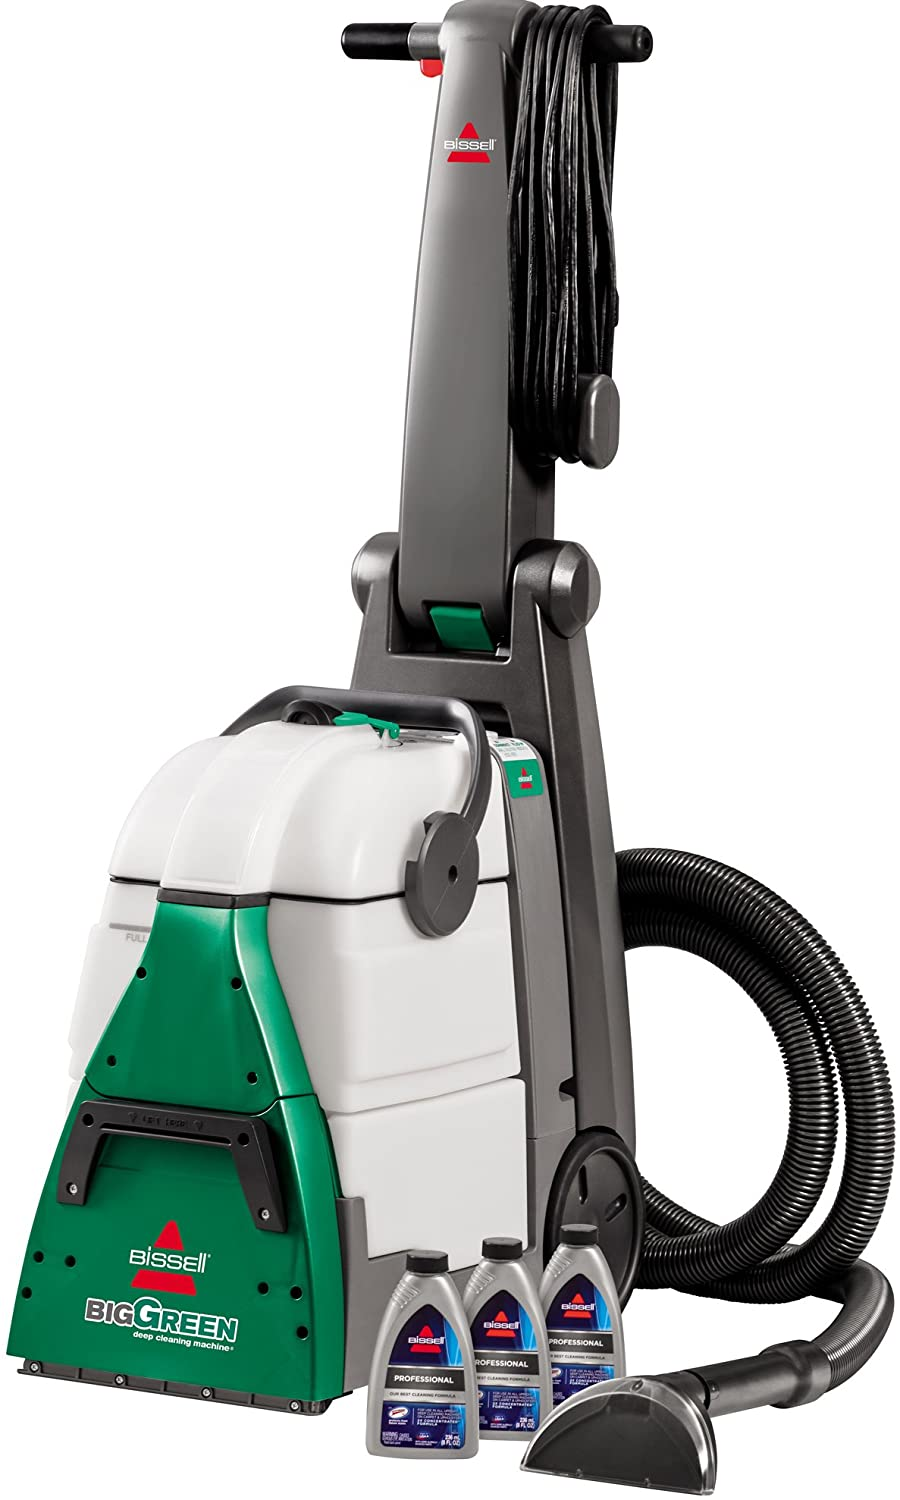 Bissell 86T3 Professional Big Green Carpet Cleaner Machine